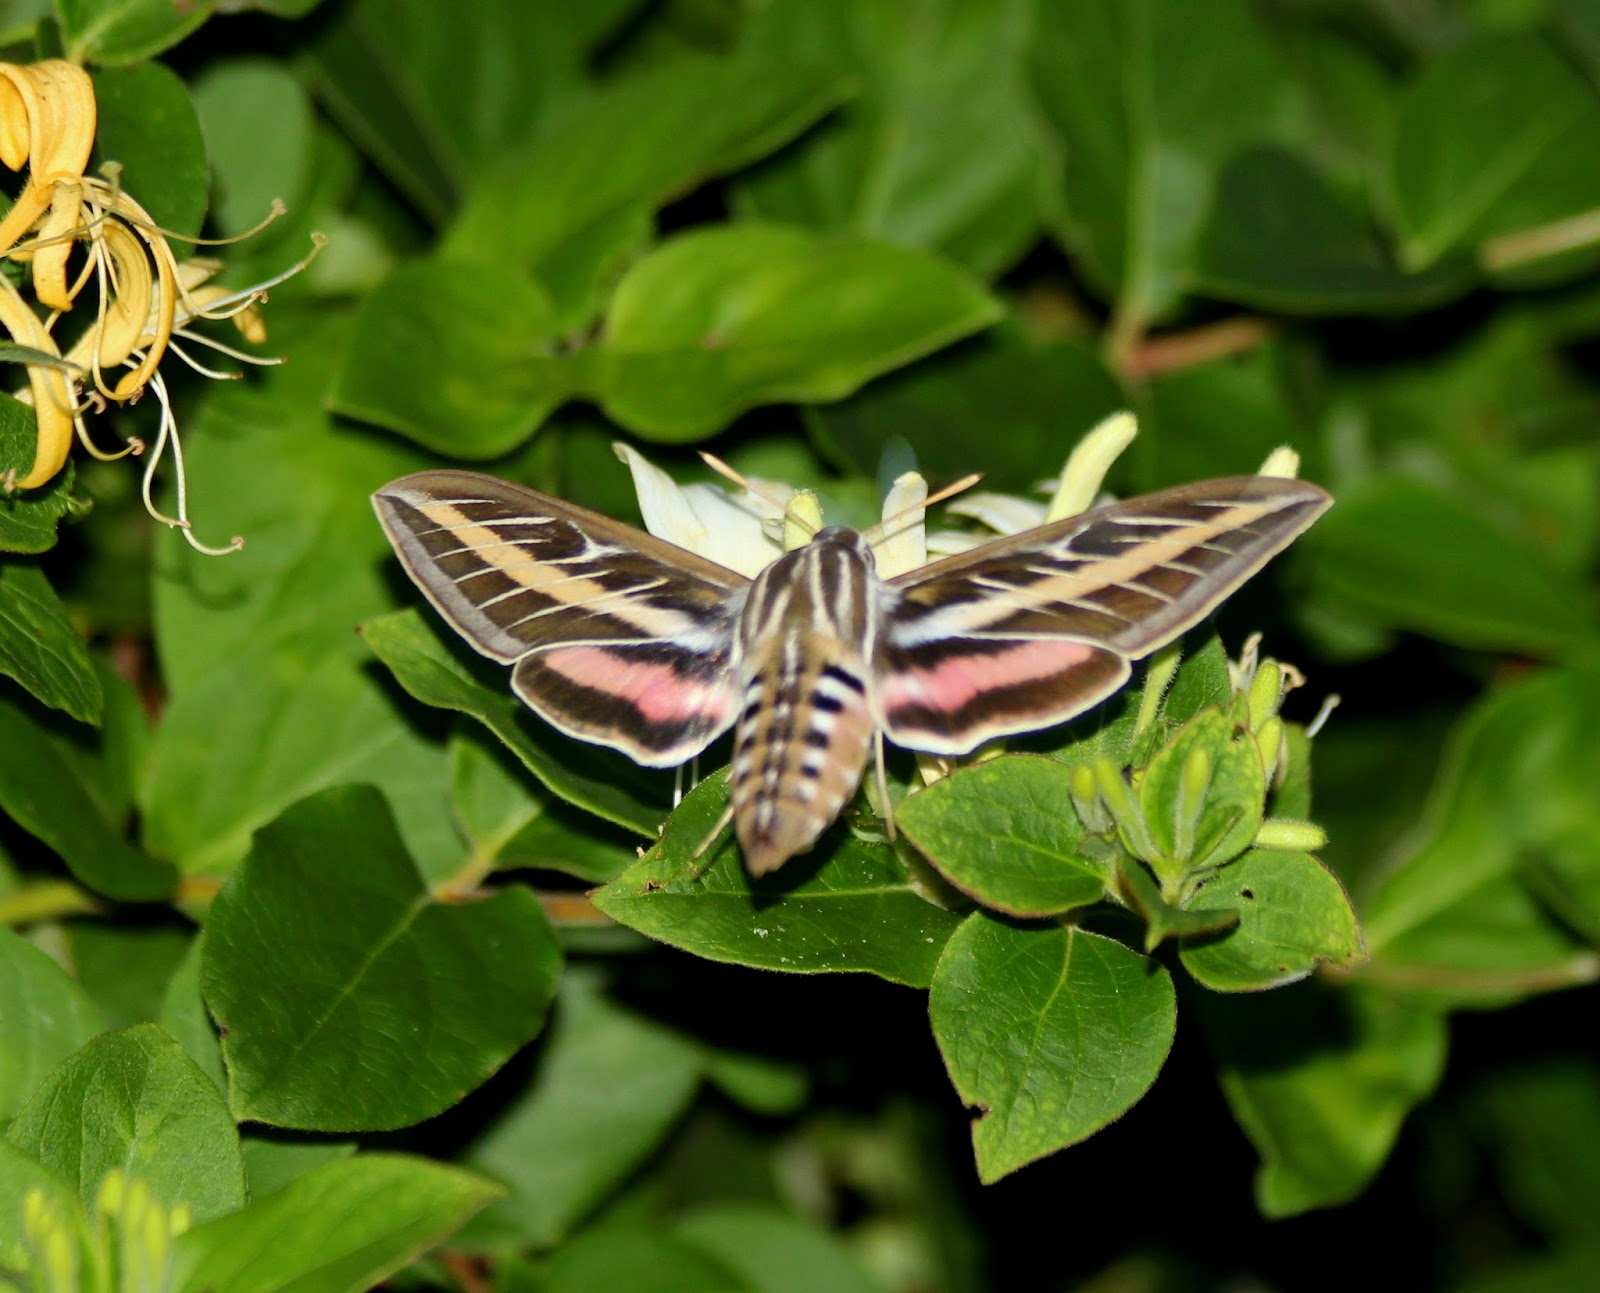 White lined sphinx moth life cycle - photo#28